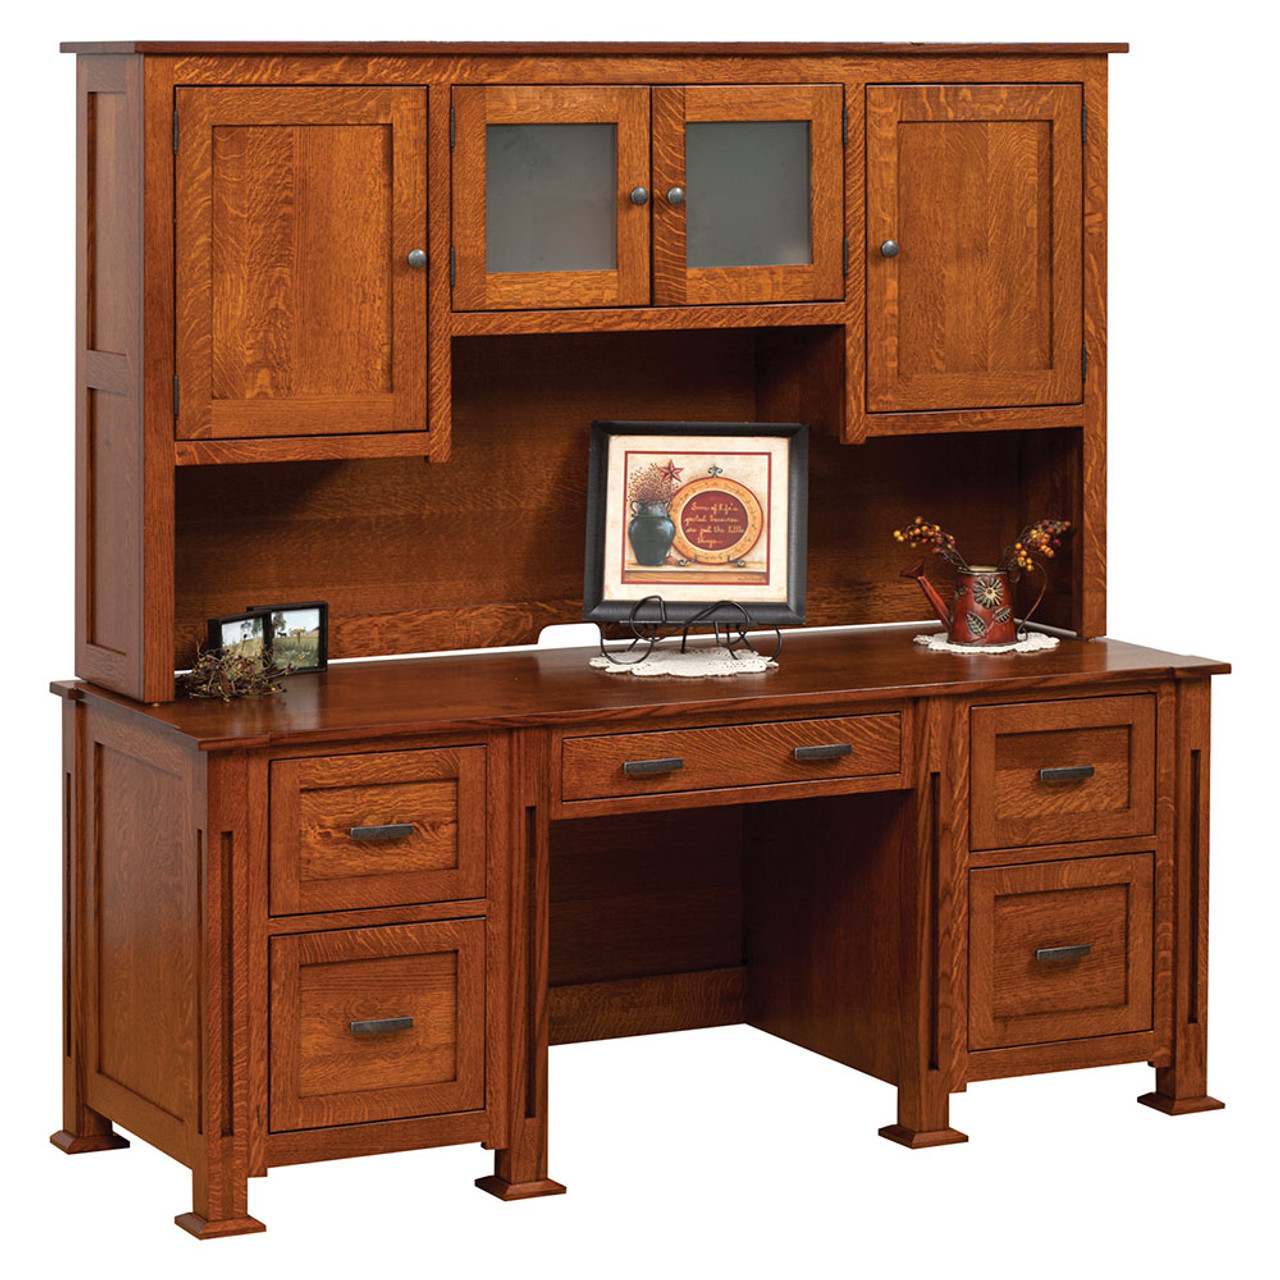 parker mission desk office furniture cherry valley furniture rh cherryvalleyamishfurniture com amish mission office furniture mission office furniture collection